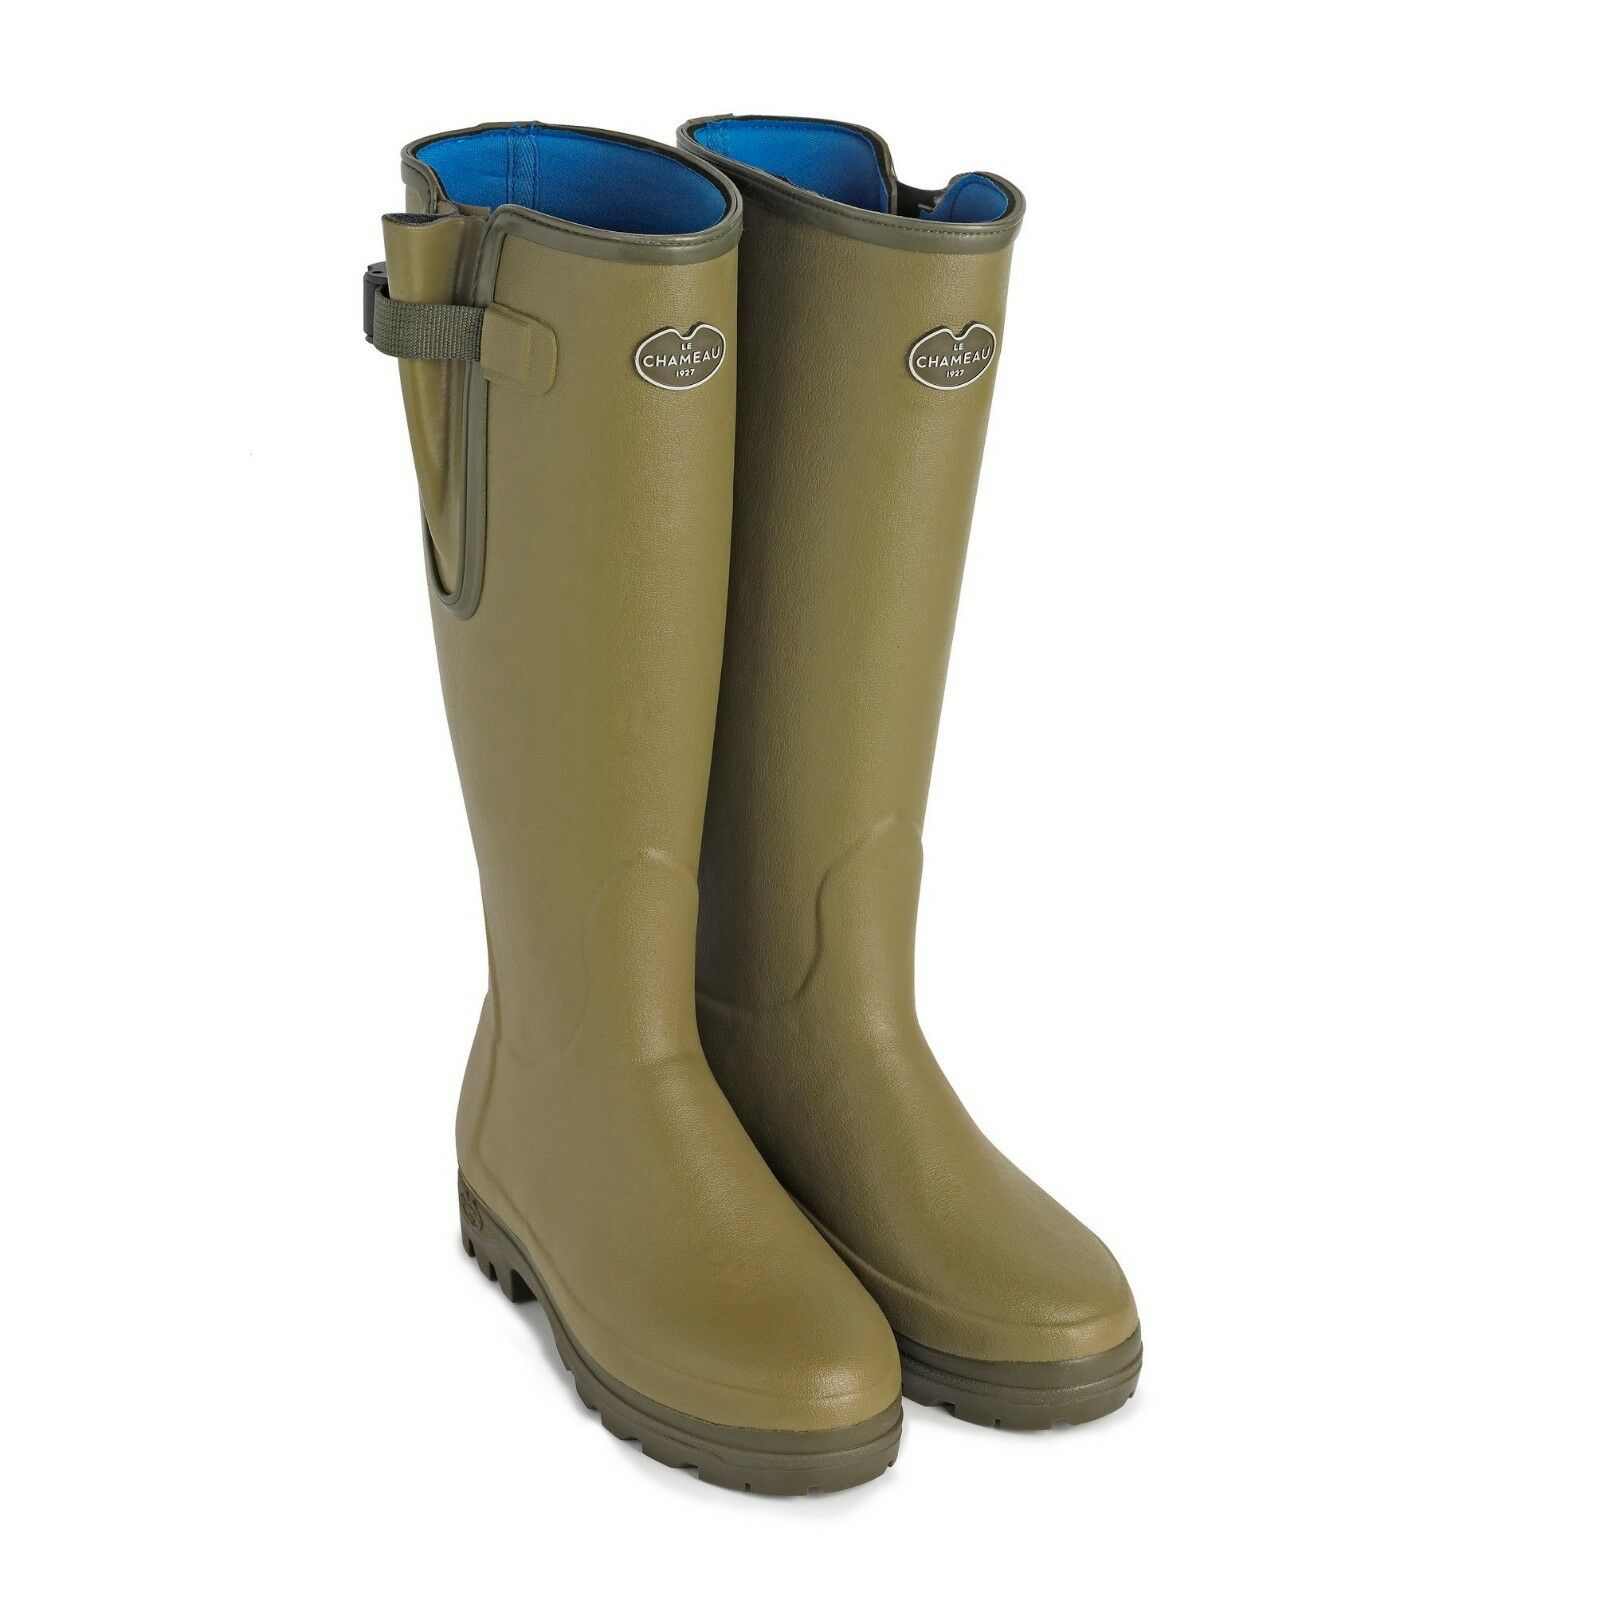 Le Chameau Vierzonord Neoprene Lined Rubber Wellington Boots